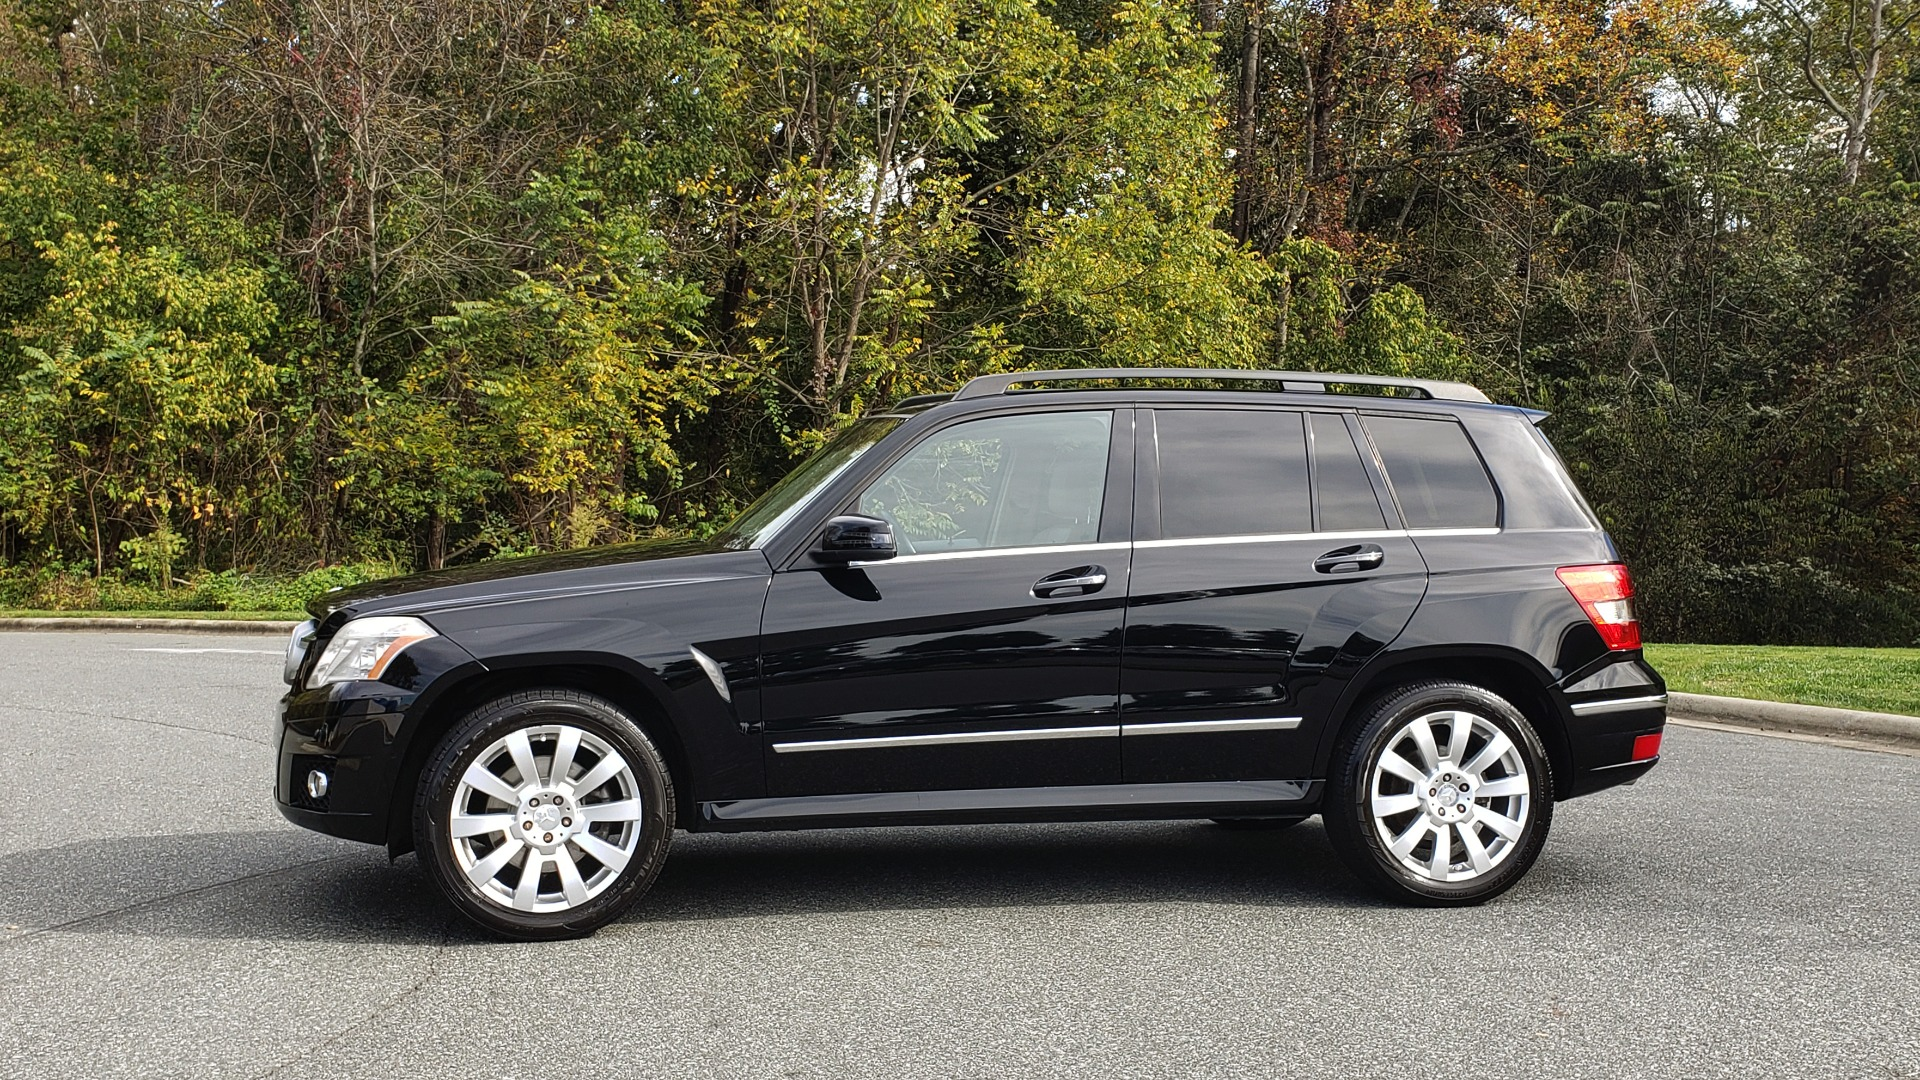 Used 2012 Mercedes-Benz GLK-CLASS GLK 350 4MATIC / PREM PKG / SUNROOF / KEYLESS-GO / NAV / REARVIEW for sale Sold at Formula Imports in Charlotte NC 28227 2